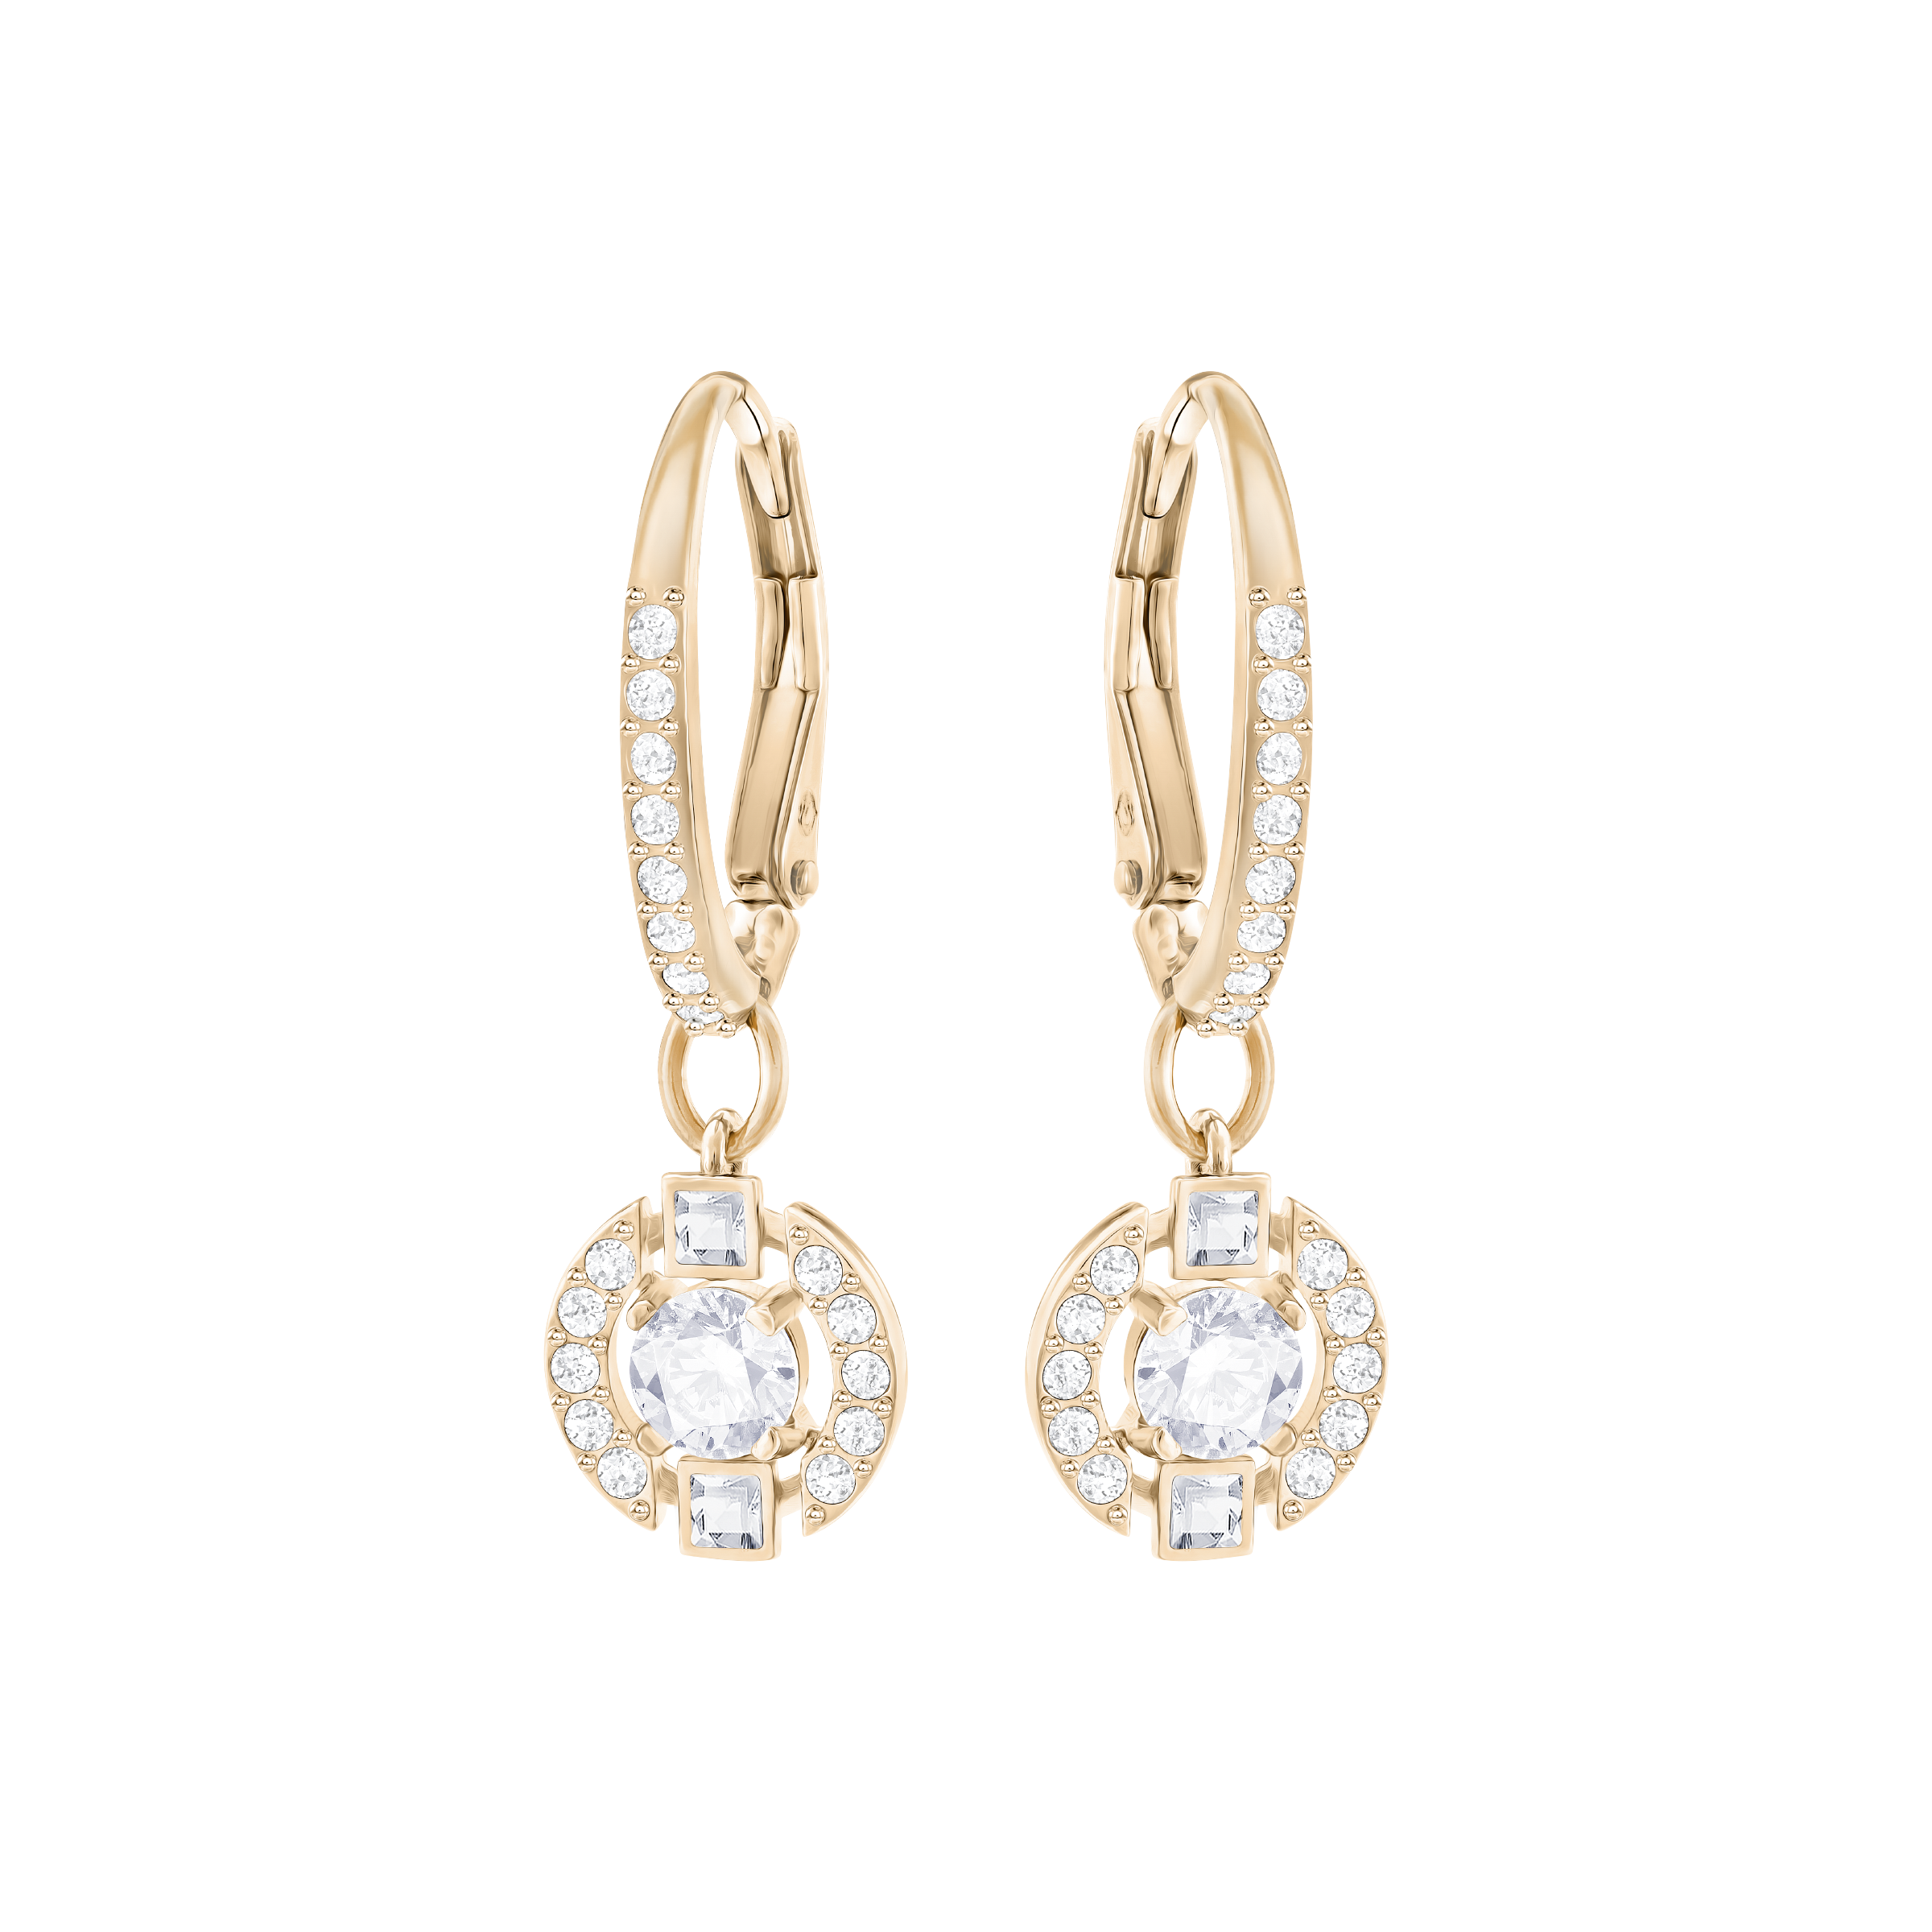 Sparkling Dance Round Pierced Earrings, White, Rose Gold Plated